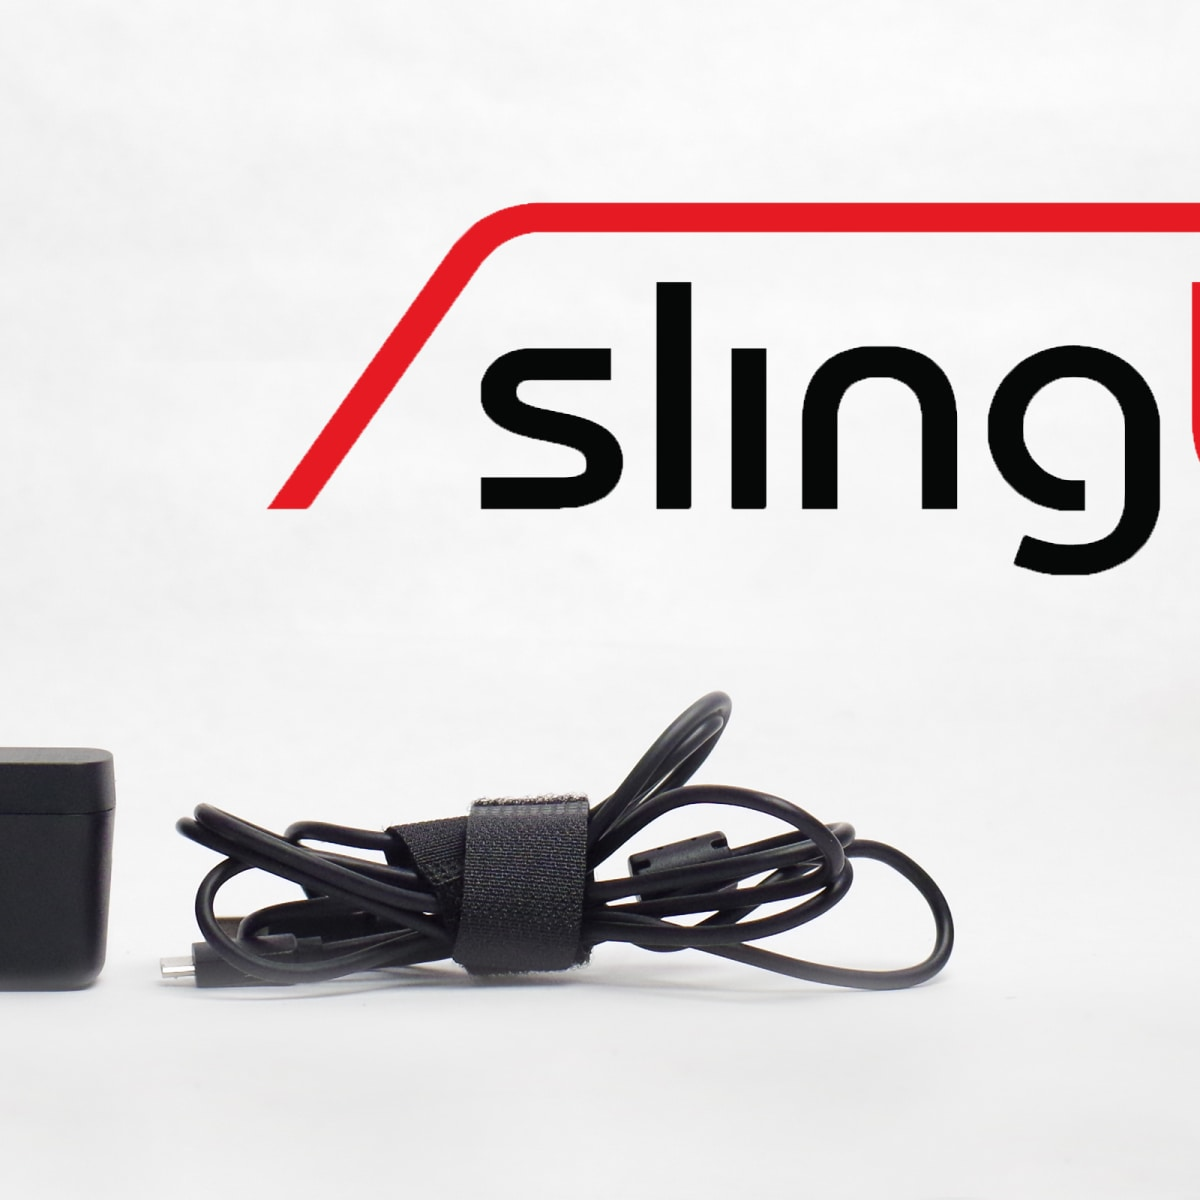 Google Chromecast Set to Get Slingbox Support - Reviewed Televisions